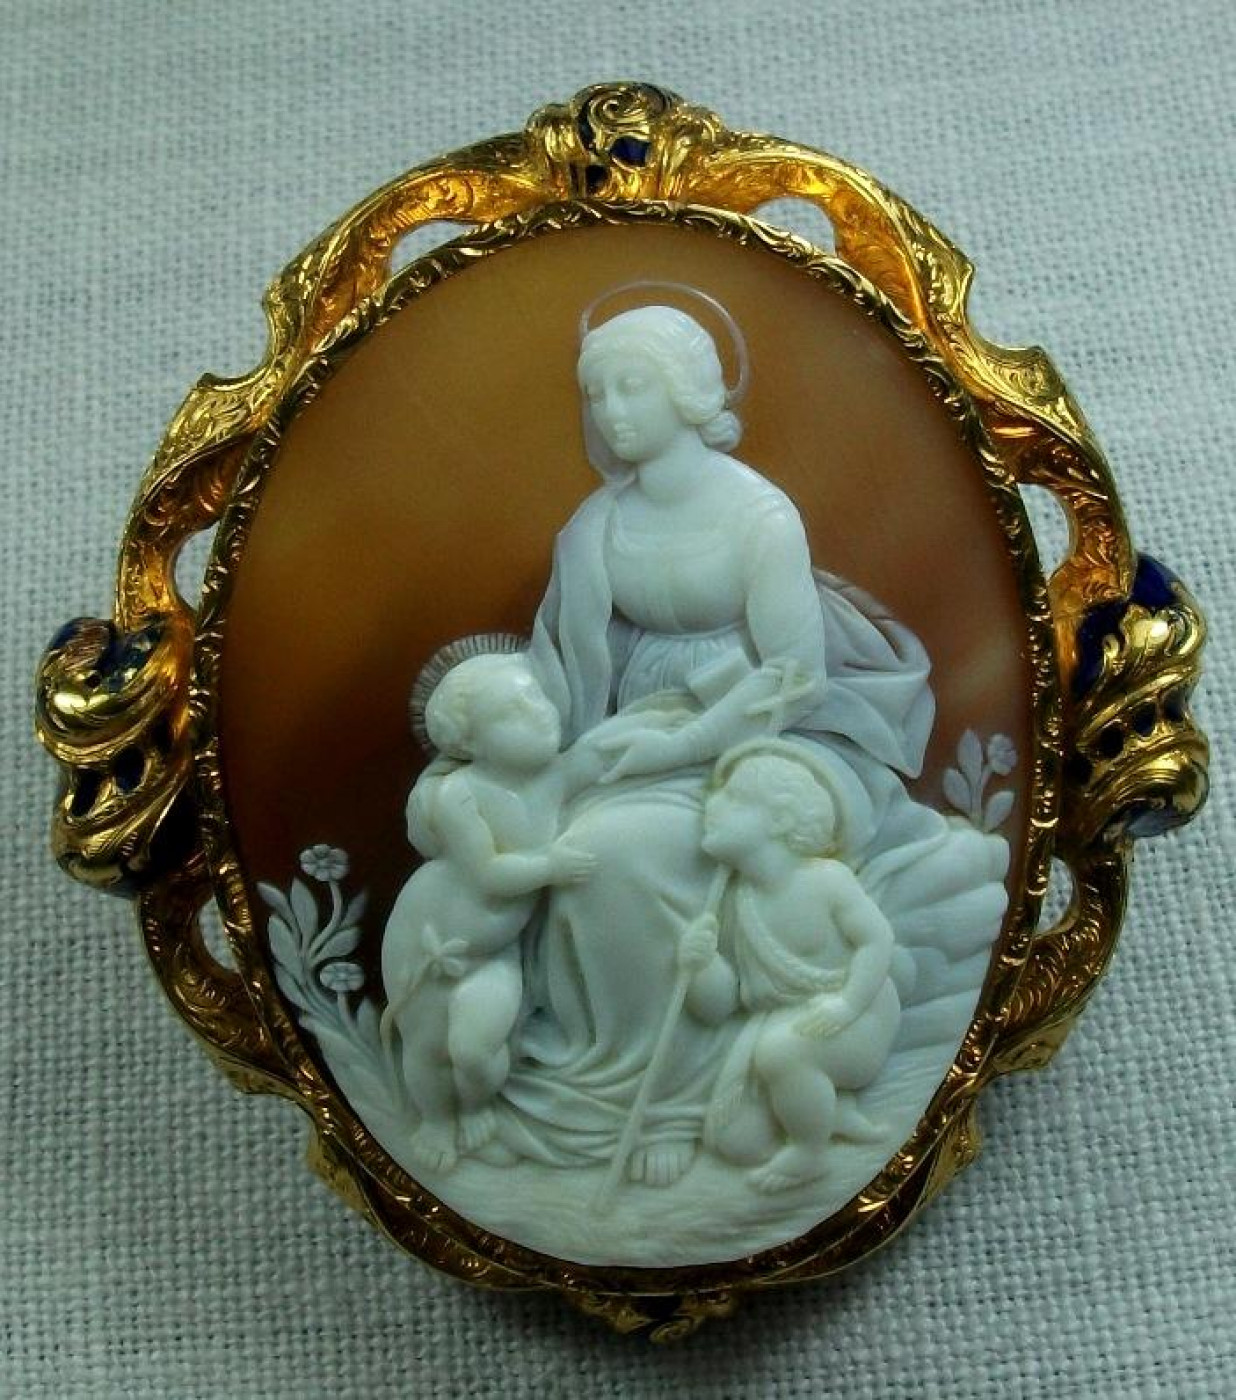 Rare Cameo of Madonna and Child after Raphael